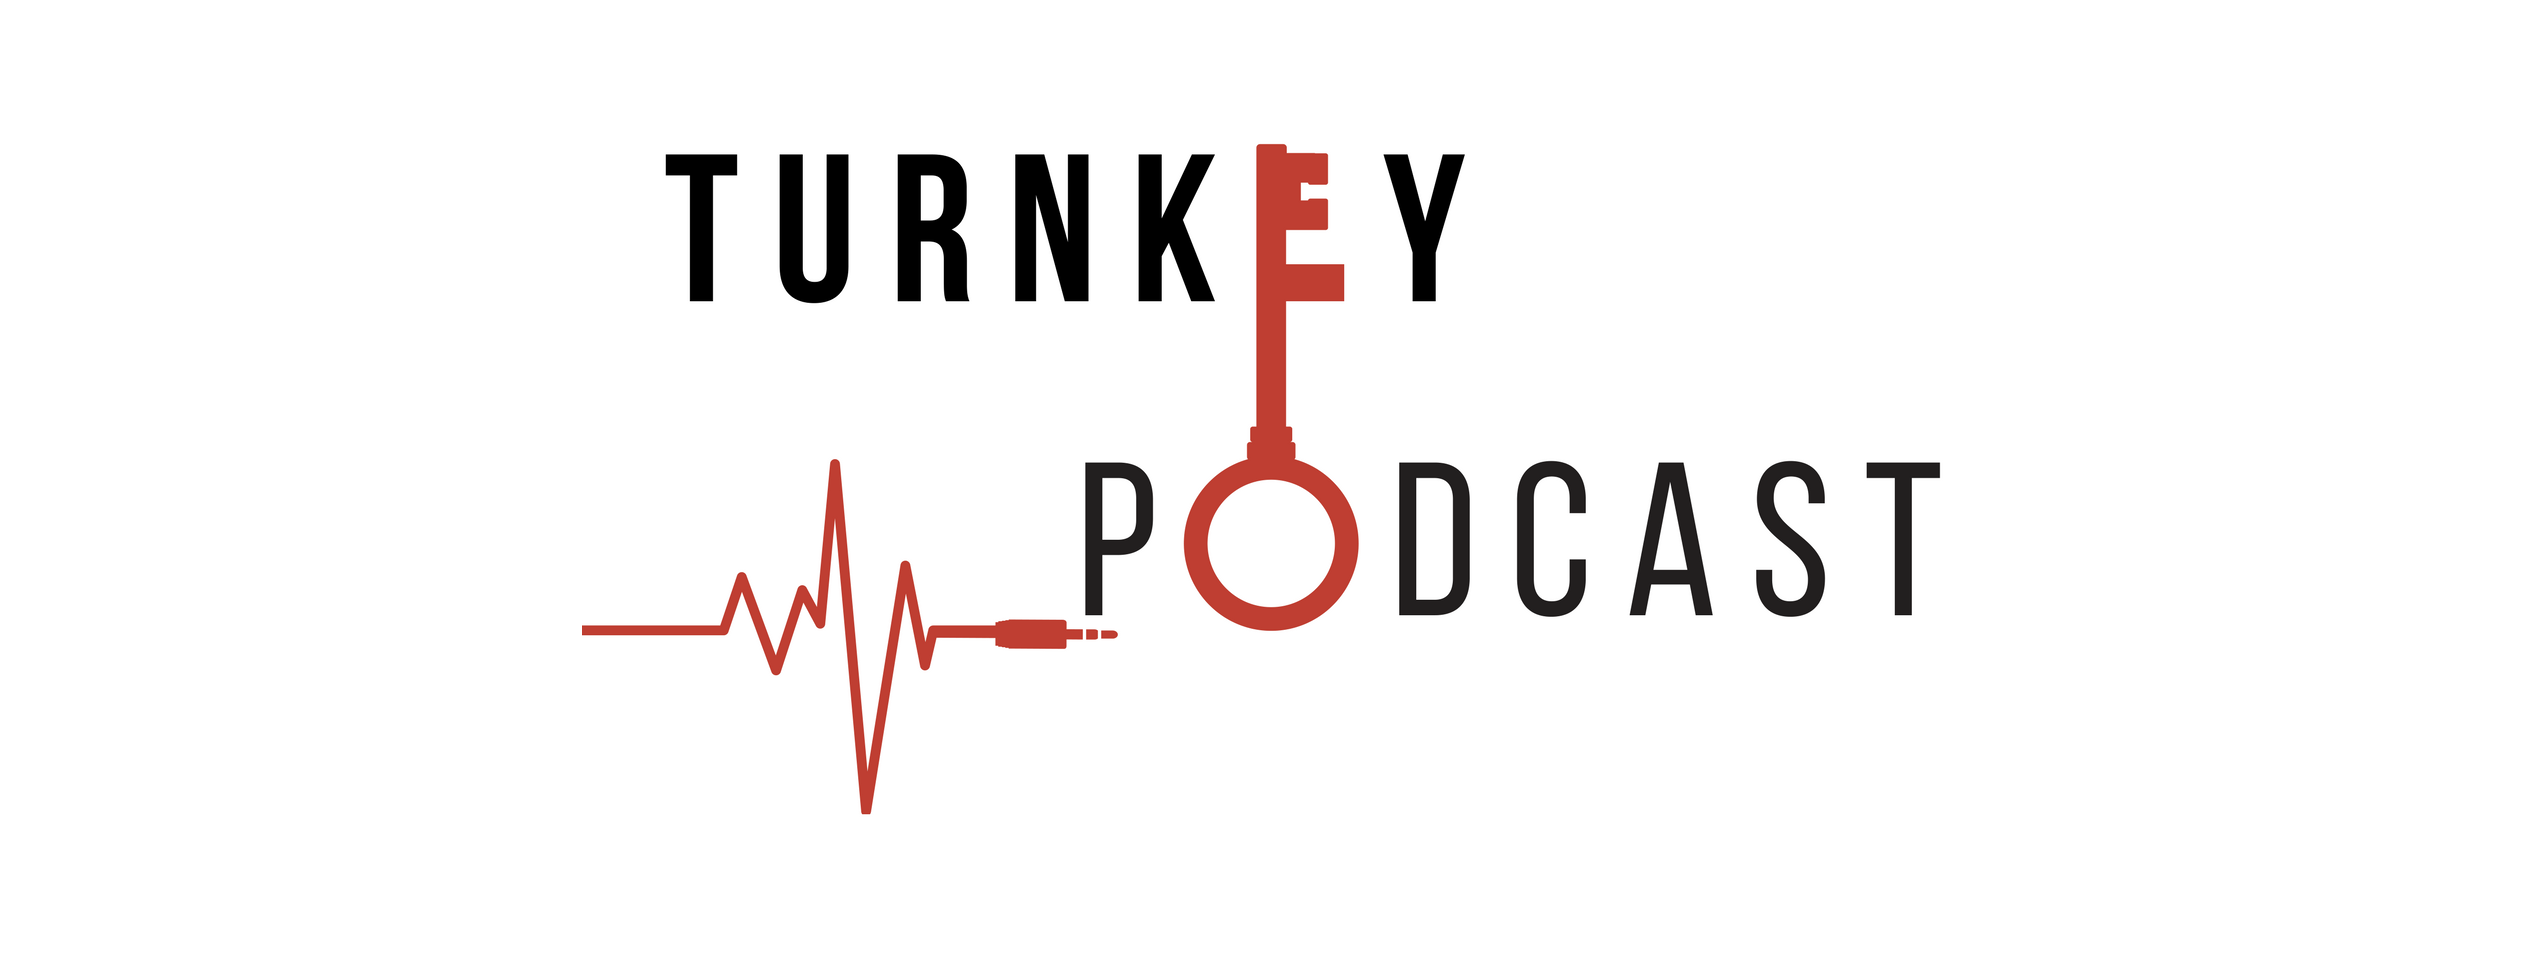 TurnKey Podcast Productions